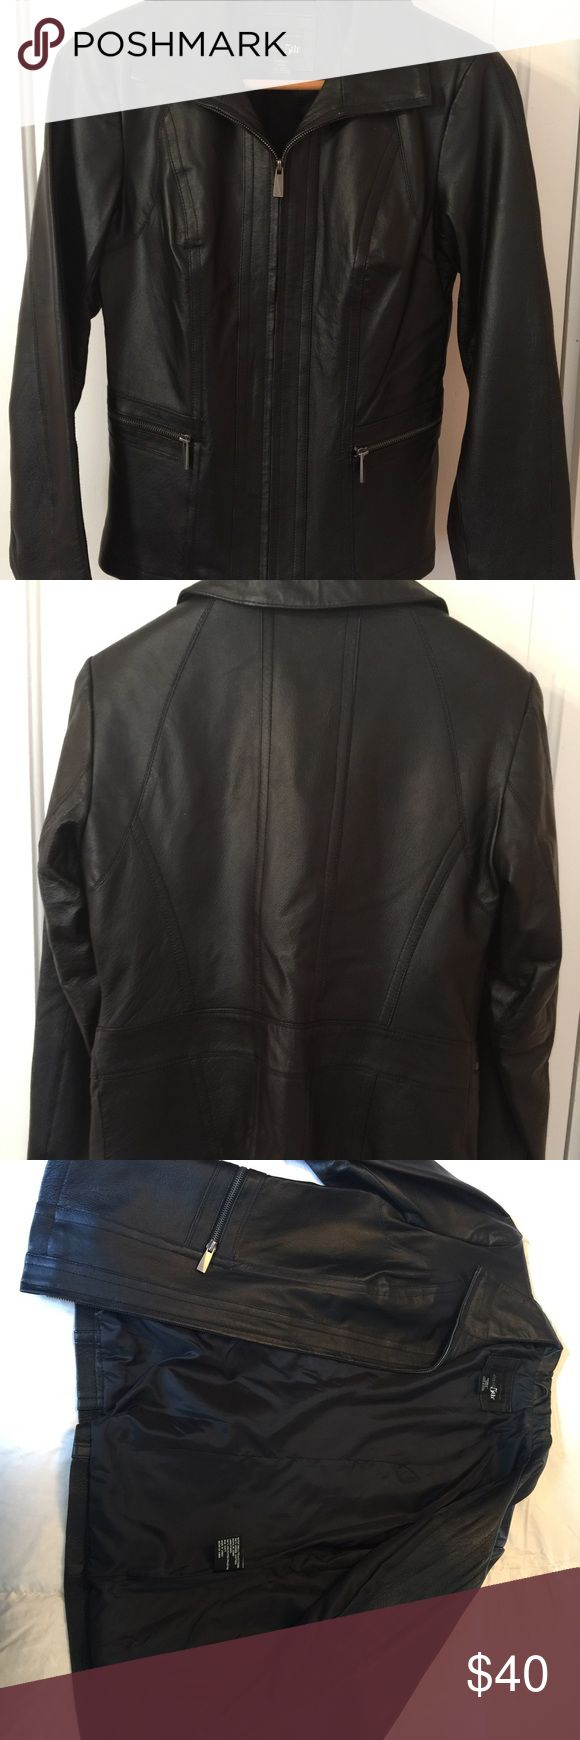 Ladies Leather Jacket Never worn, new w/o tags. 5th East Jackets & Coats